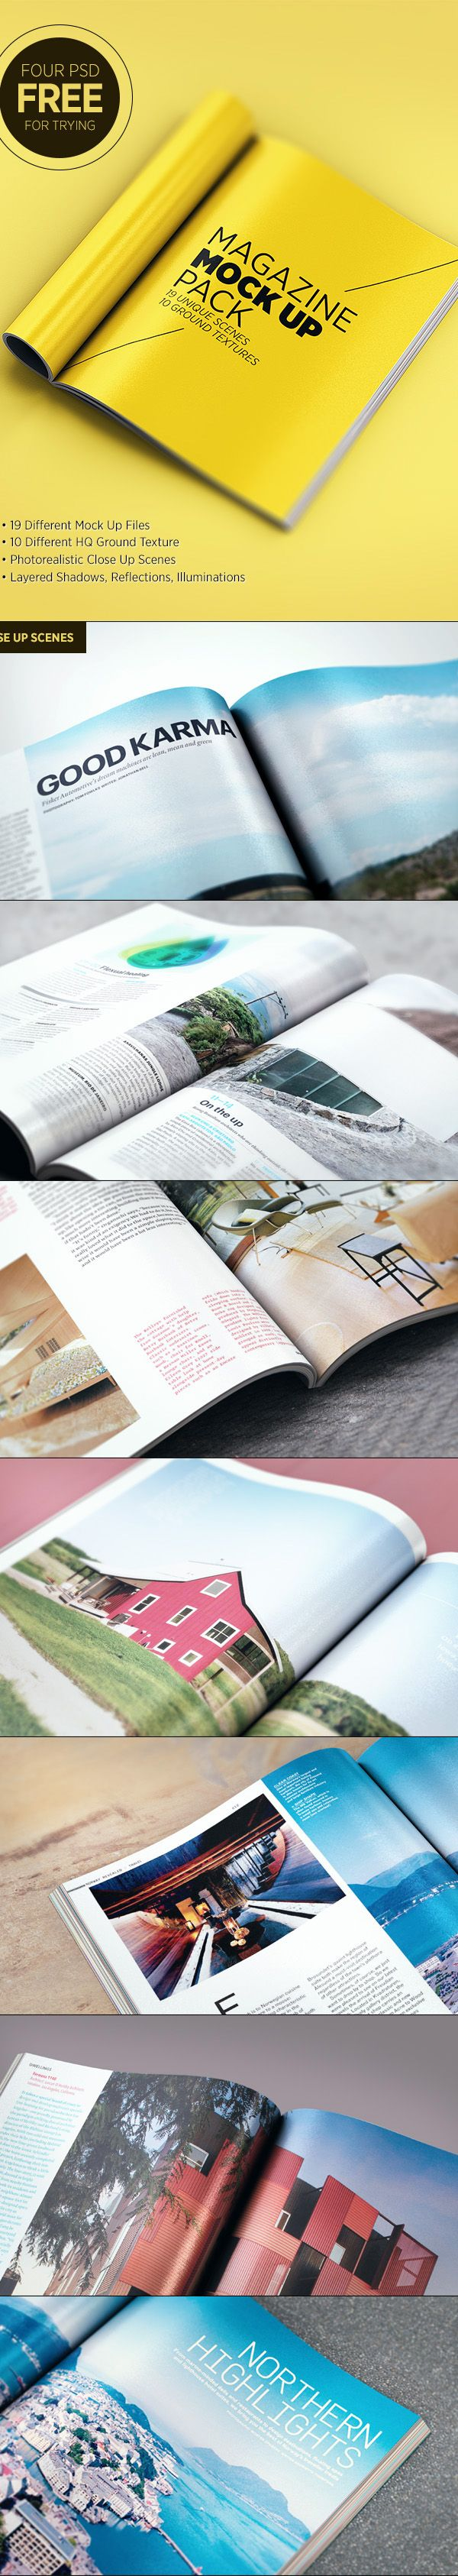 Magazine Mock Up Pack on Behance